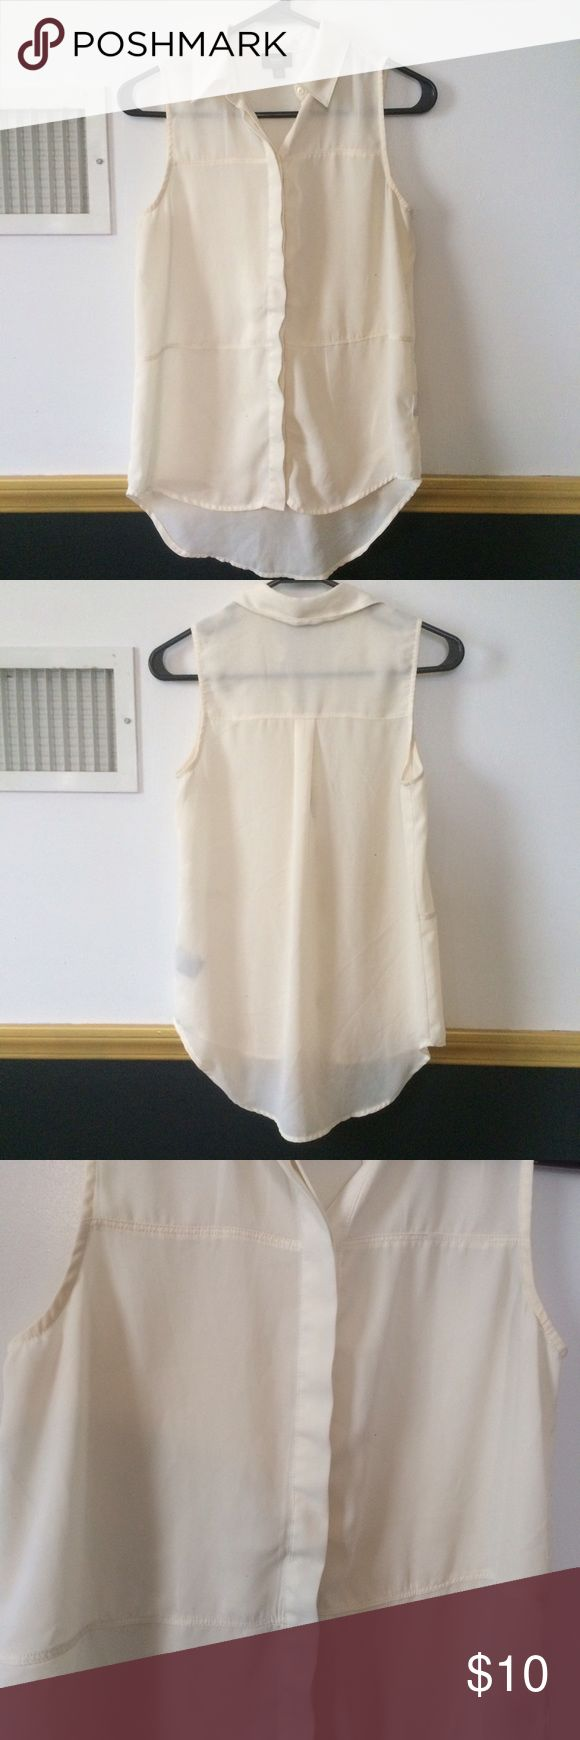 Sheer paneled sleeveless blouse Cream sheer paneled sleeveless blouse. A staple piece that every closet needs! Easily dresses up or down Tops Button Down Shirts